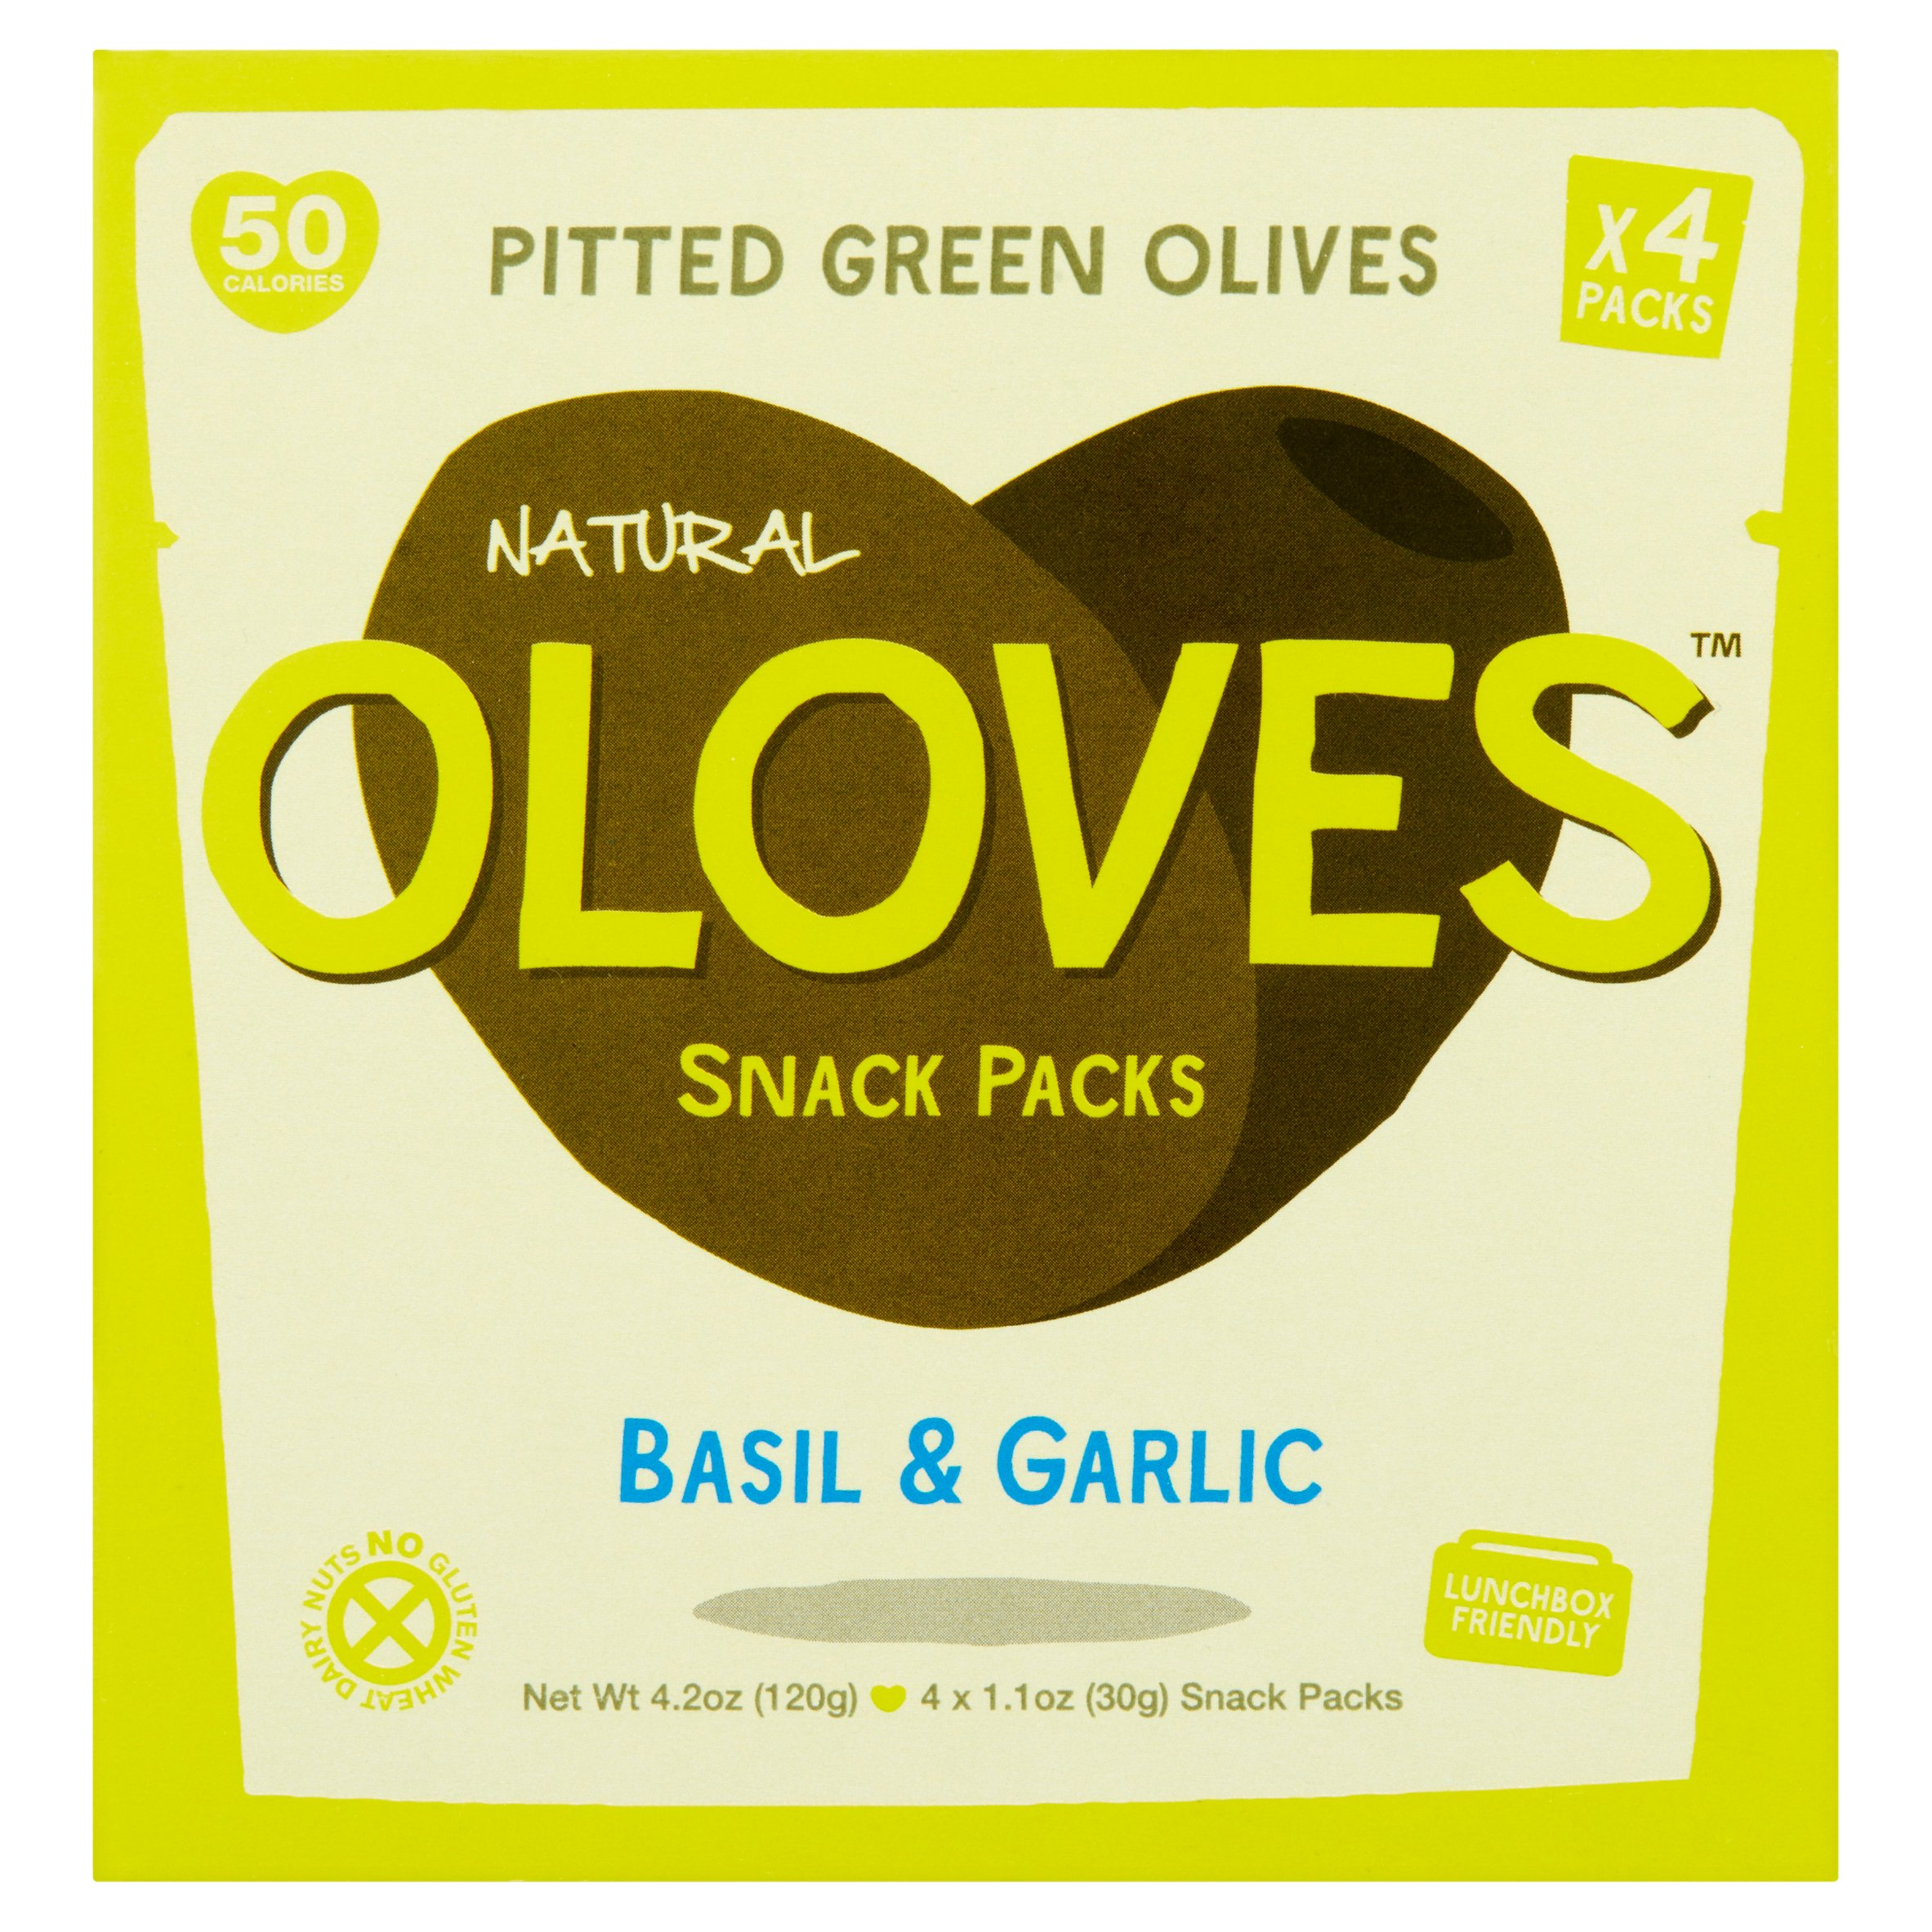 (8 Pack) Oloves Basil & Garlic Natural Pitted Green Olives Snack Packs, 1.1 oz, 4 count